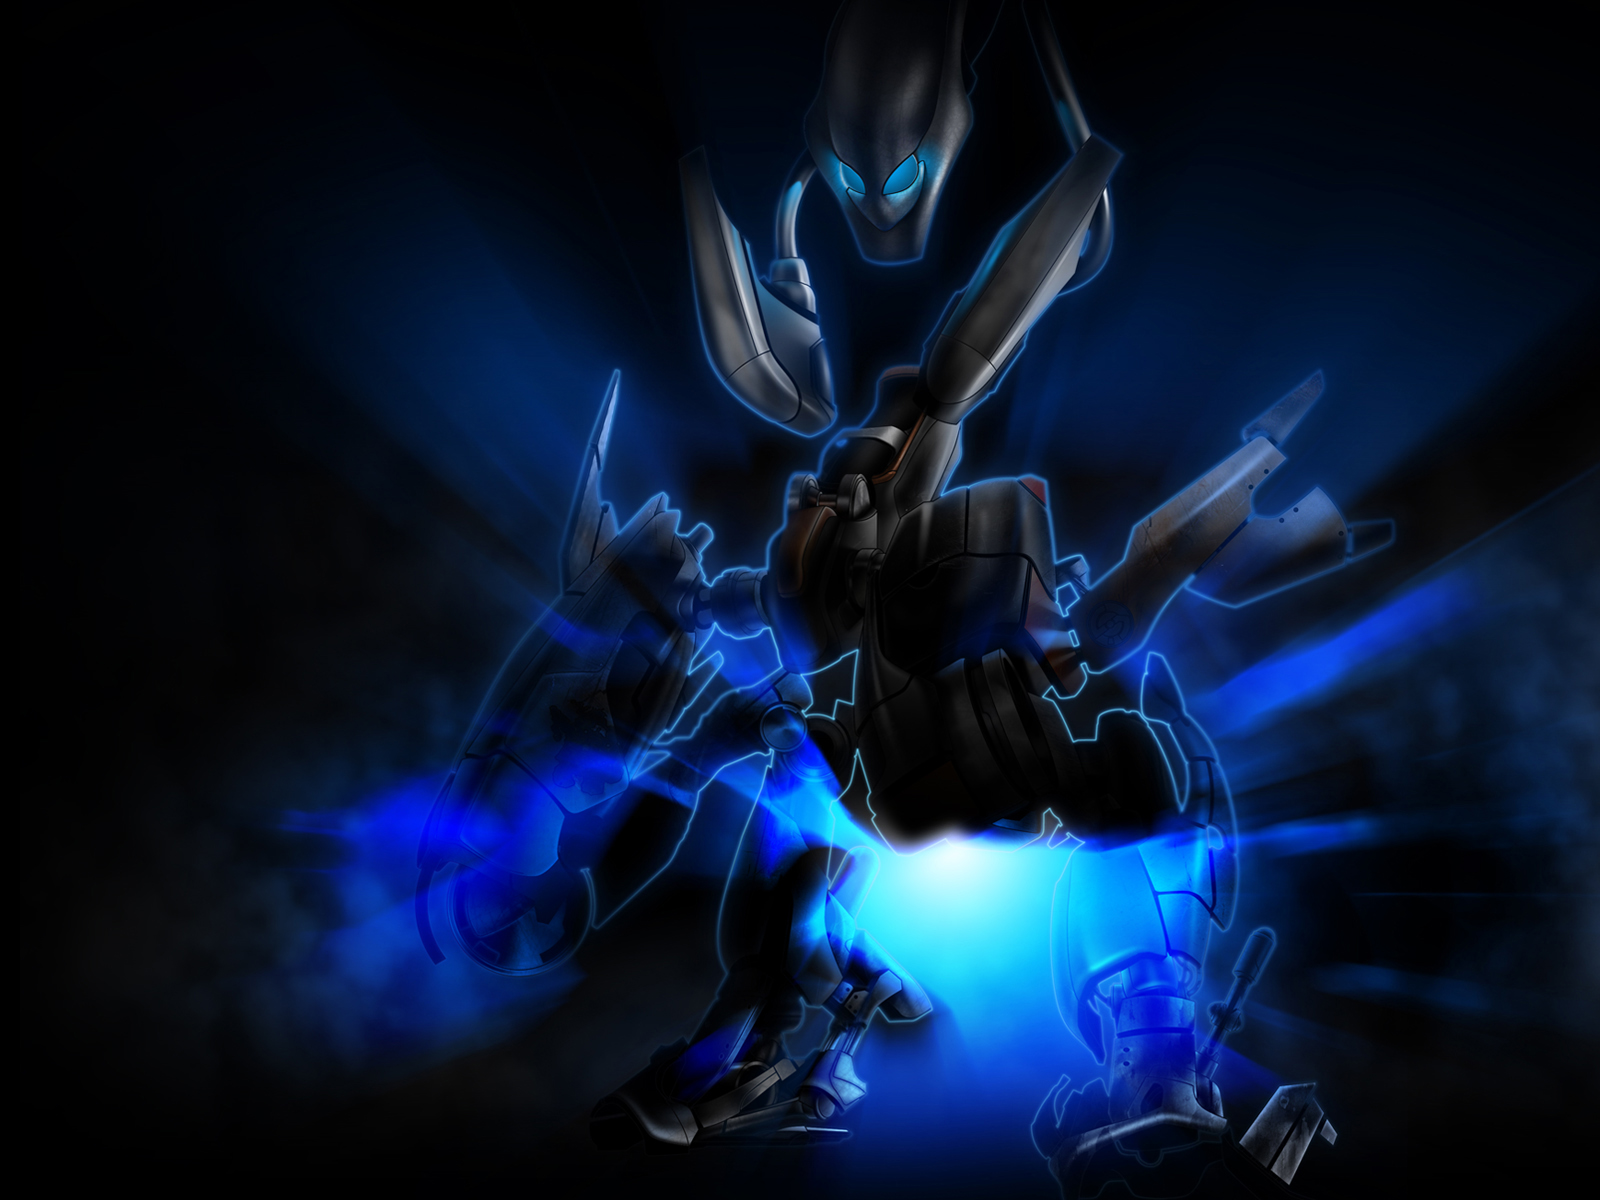 Alienware wallpaper and background image 1600x1200 id for Fond ecran gaming